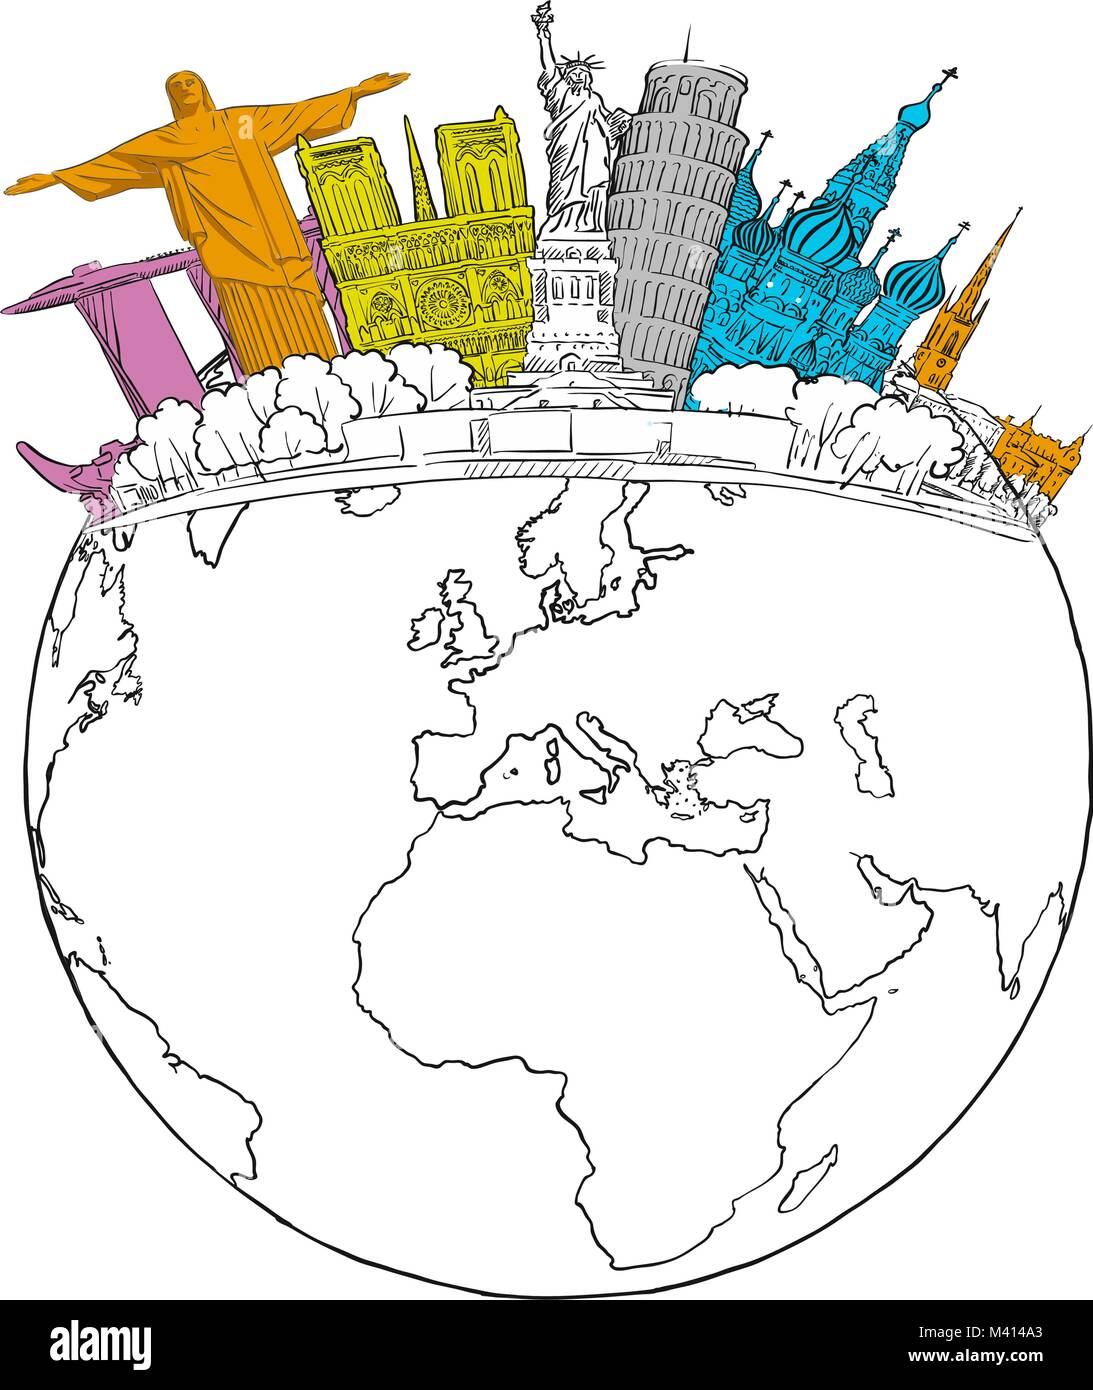 Travel To World Landmarks On Globe Tourism Sketch Concept With Sketched Earth Travelling Vector Illustration Hand Drawn Modern Drawing